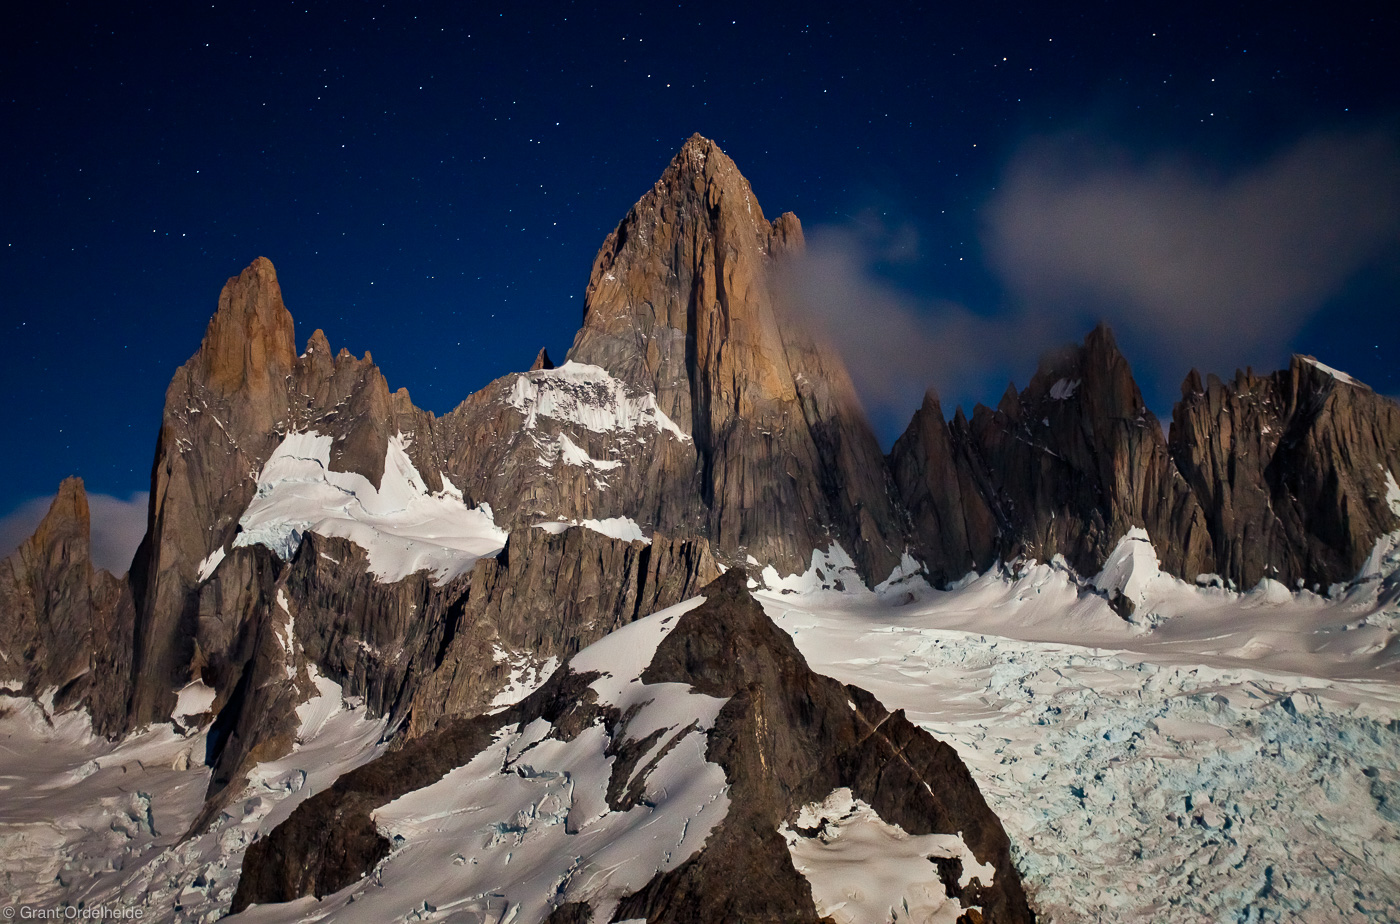 fitzroy, night, sky, moonlight, el chalten, argentina, summit, illuminates, cerro, madsen, climbing, high, winds, expose, photo